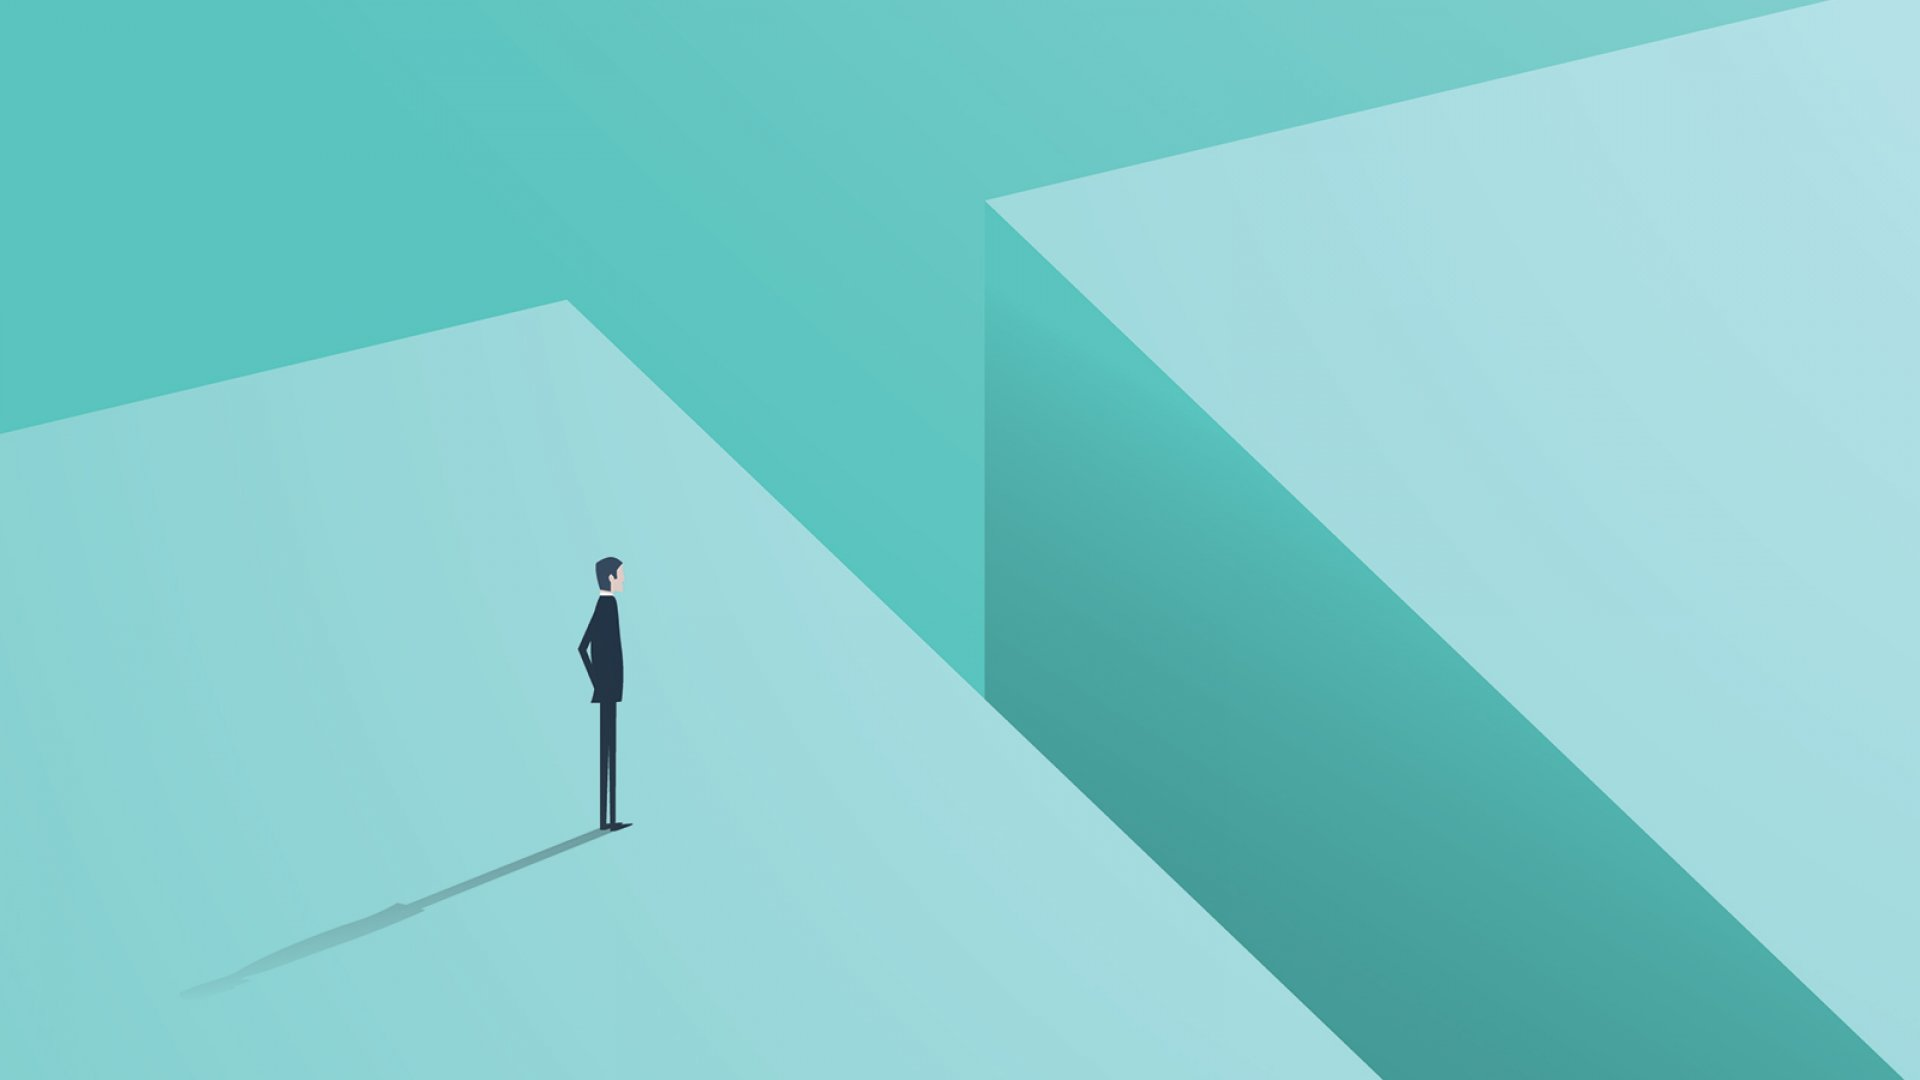 These 5 Barriers Prevent You From Being a Better Leader. Here's What to Do Differently